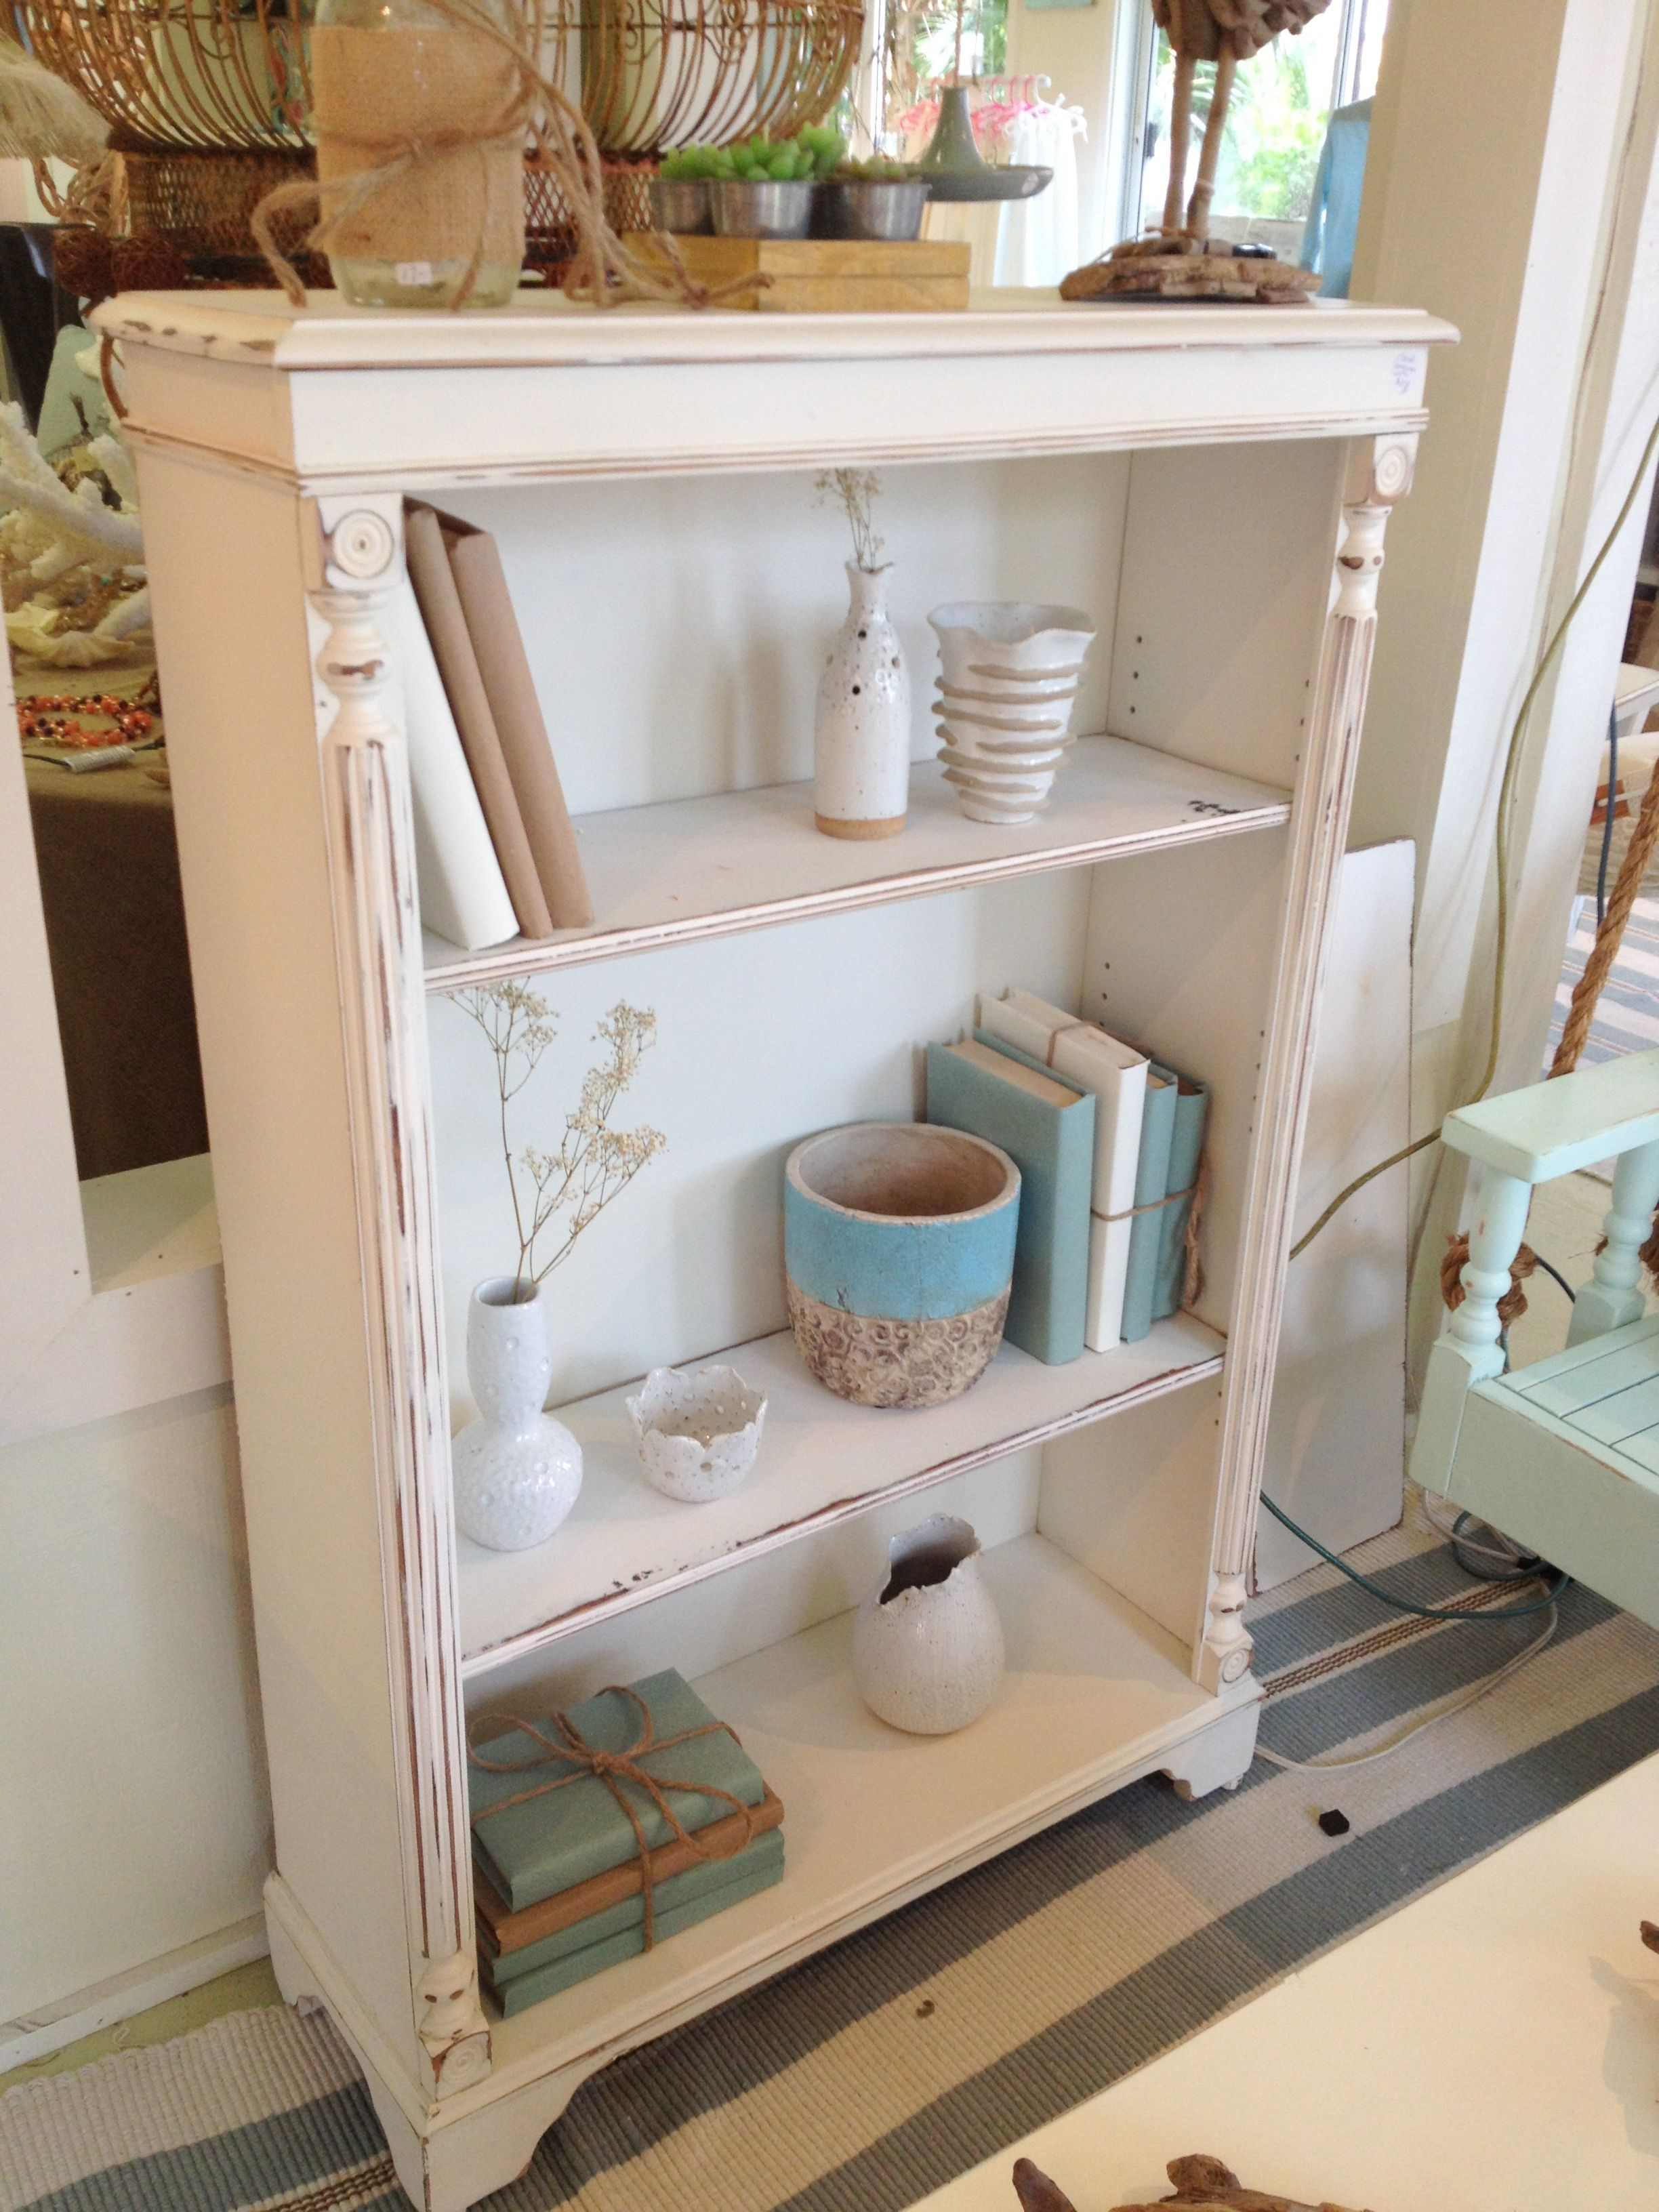 Beachy Decor Looks Like An Easy Thing To Refinish And Bookcase